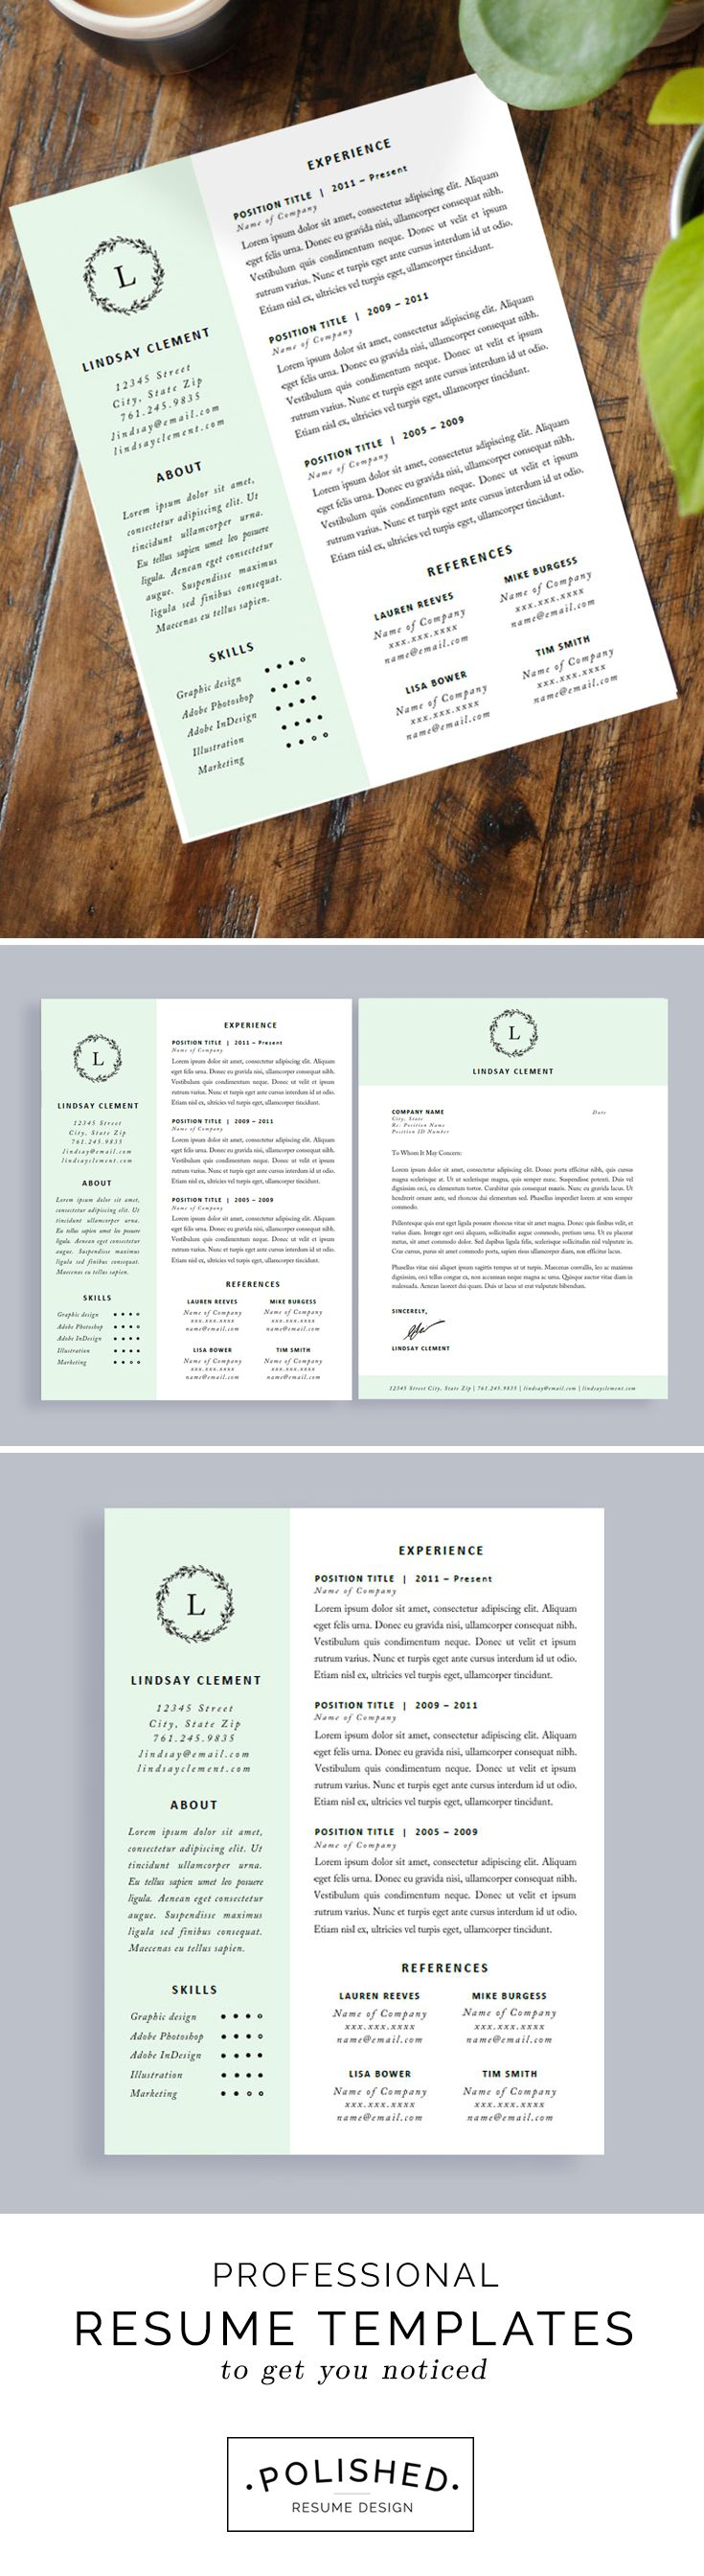 best ideas about creative resume templates professional resume templates for microsoft word features 1 and 2 page options plus a